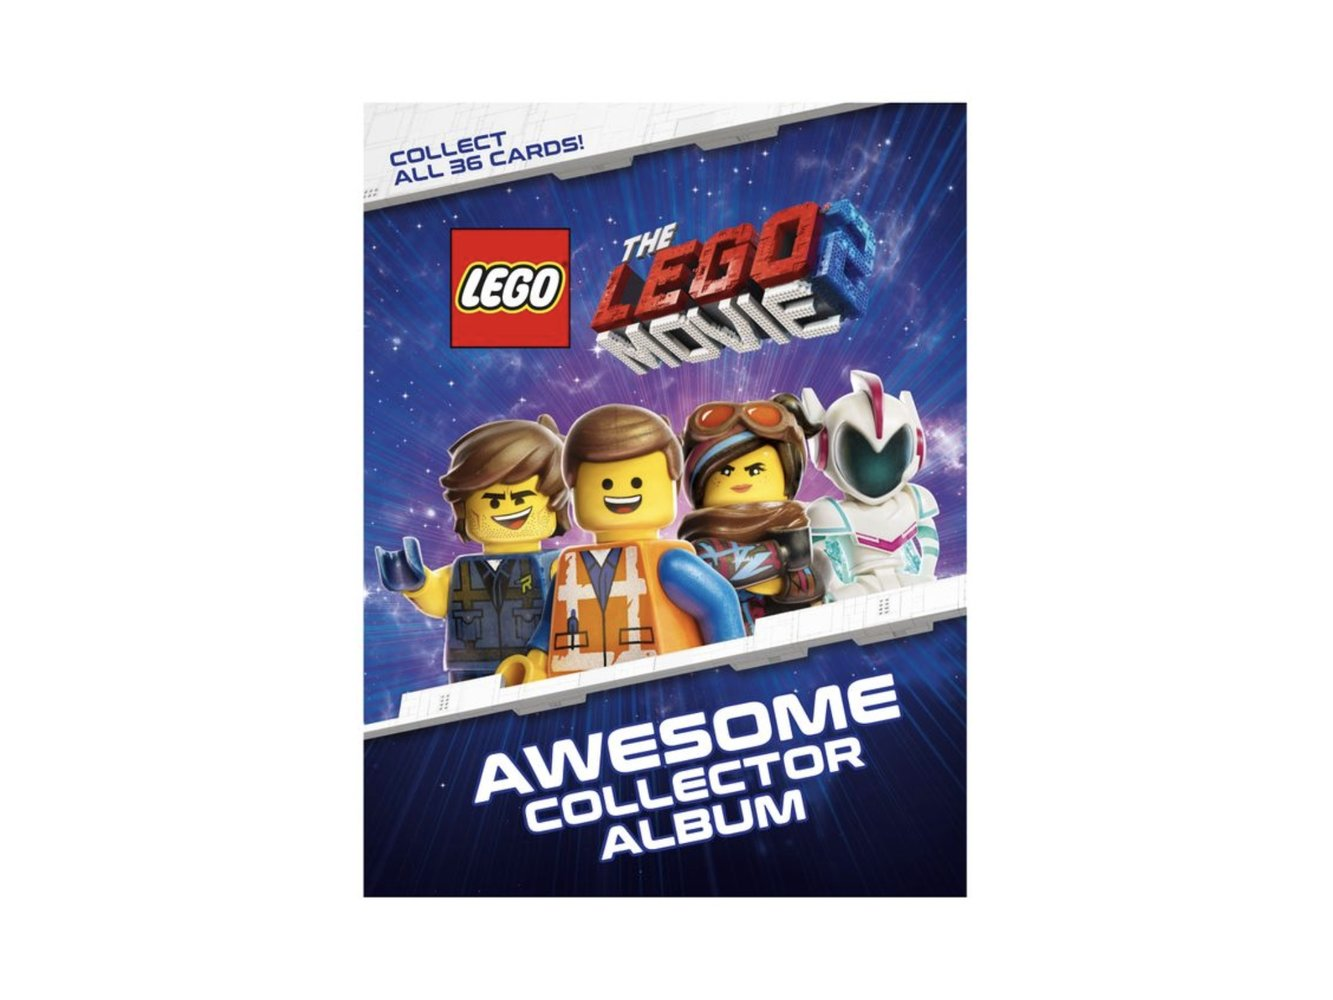 The LEGO Movie 2 Awesome Collector Album